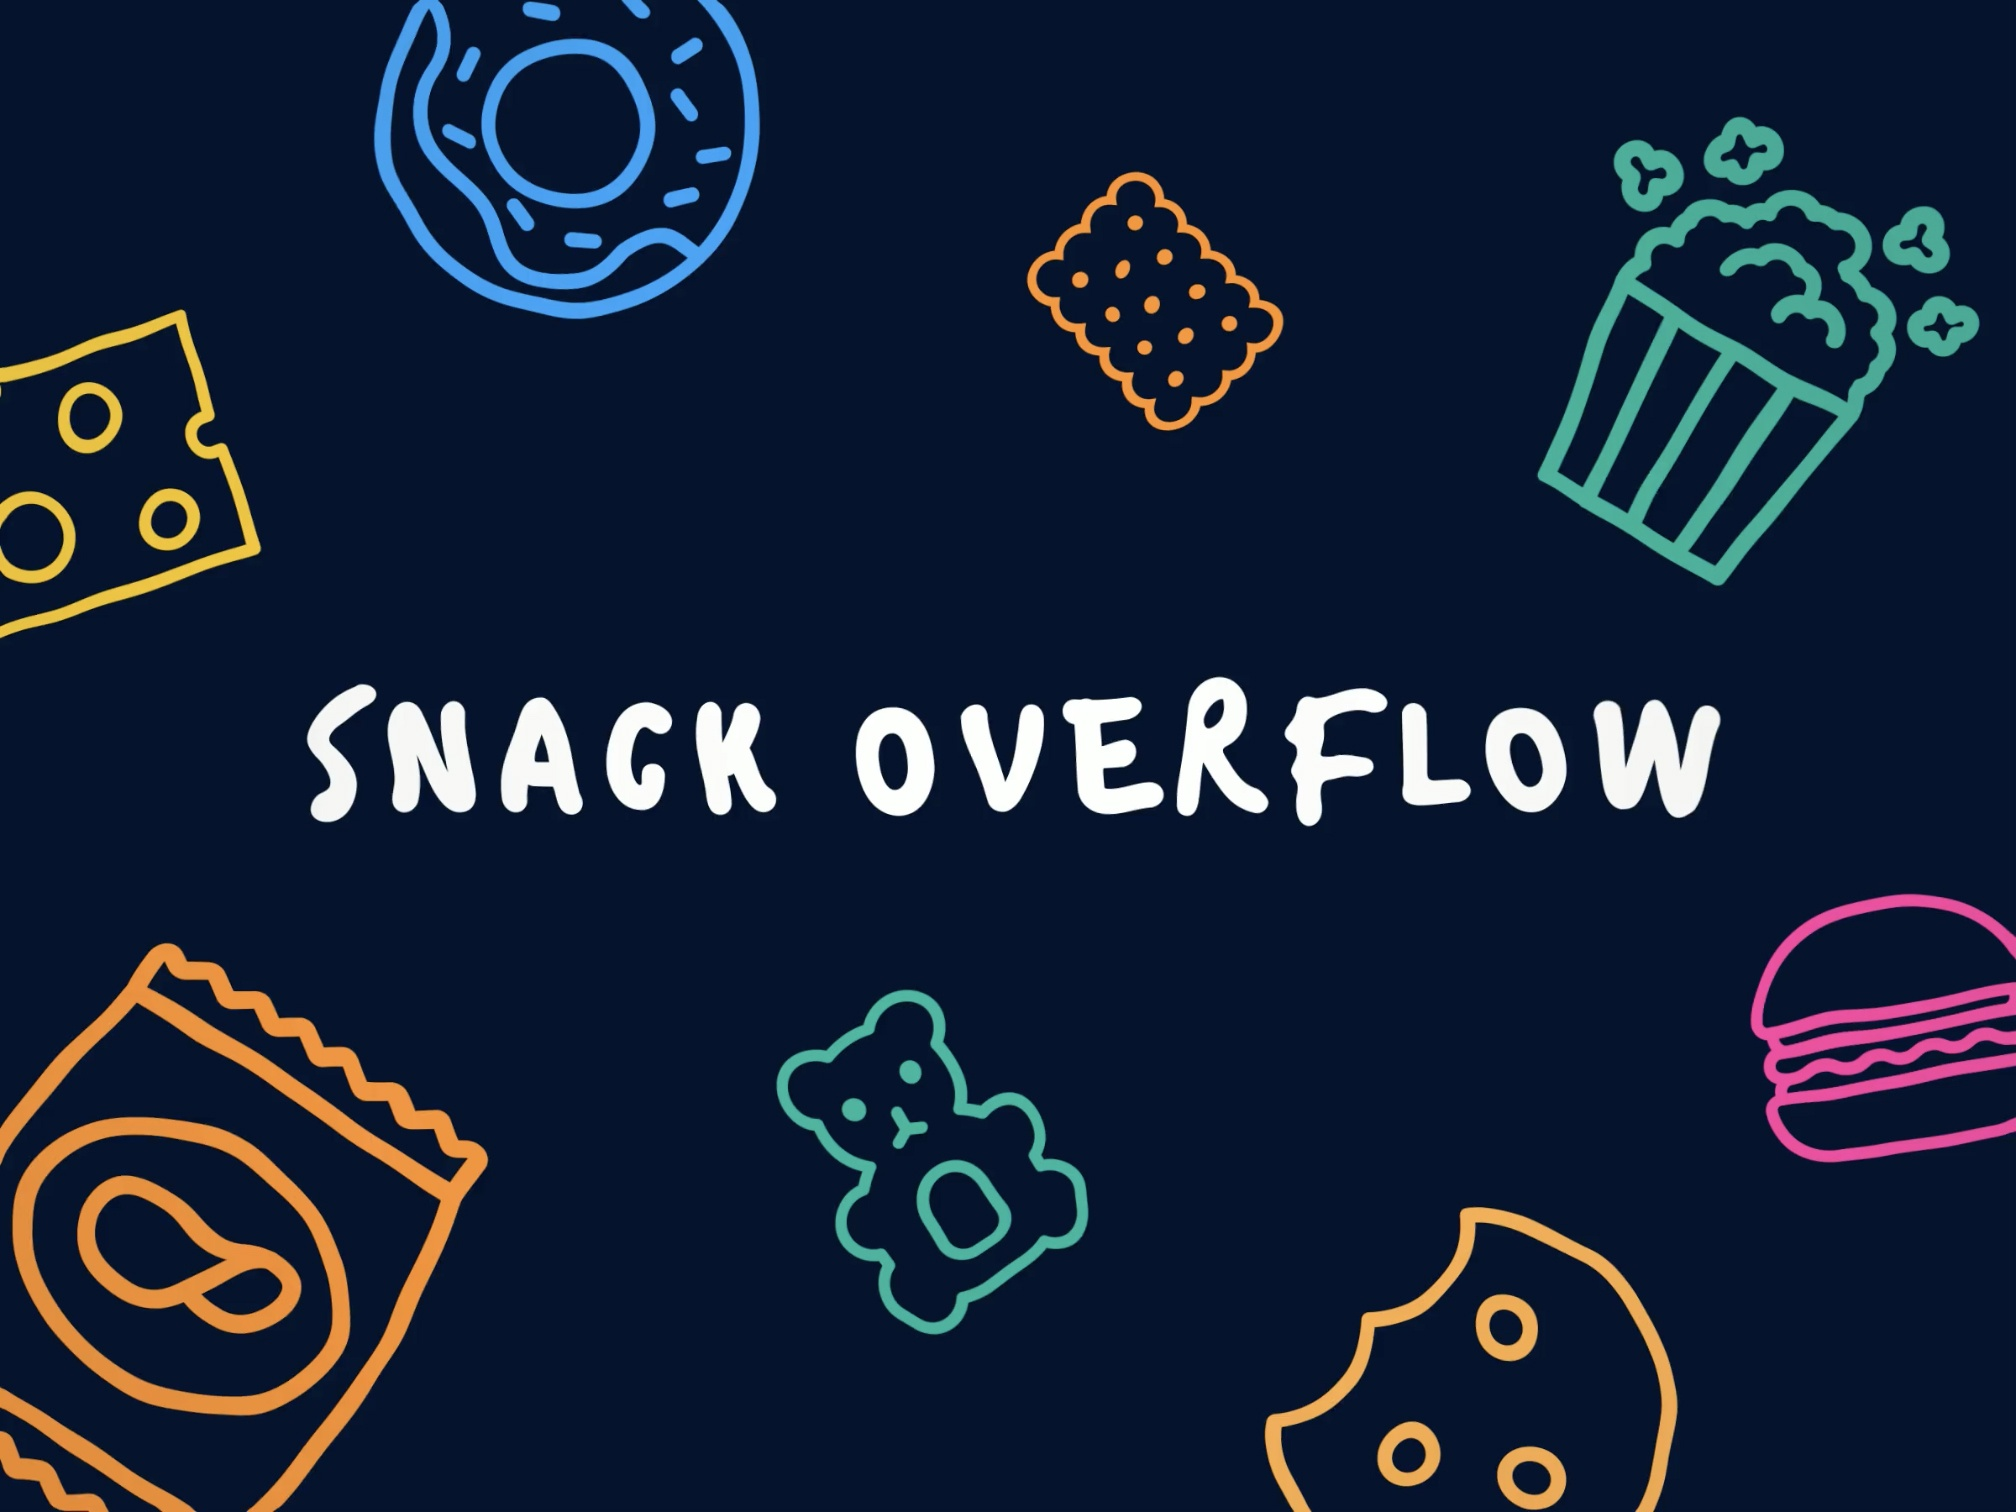 Podcasts Video Intro - Snack overflow